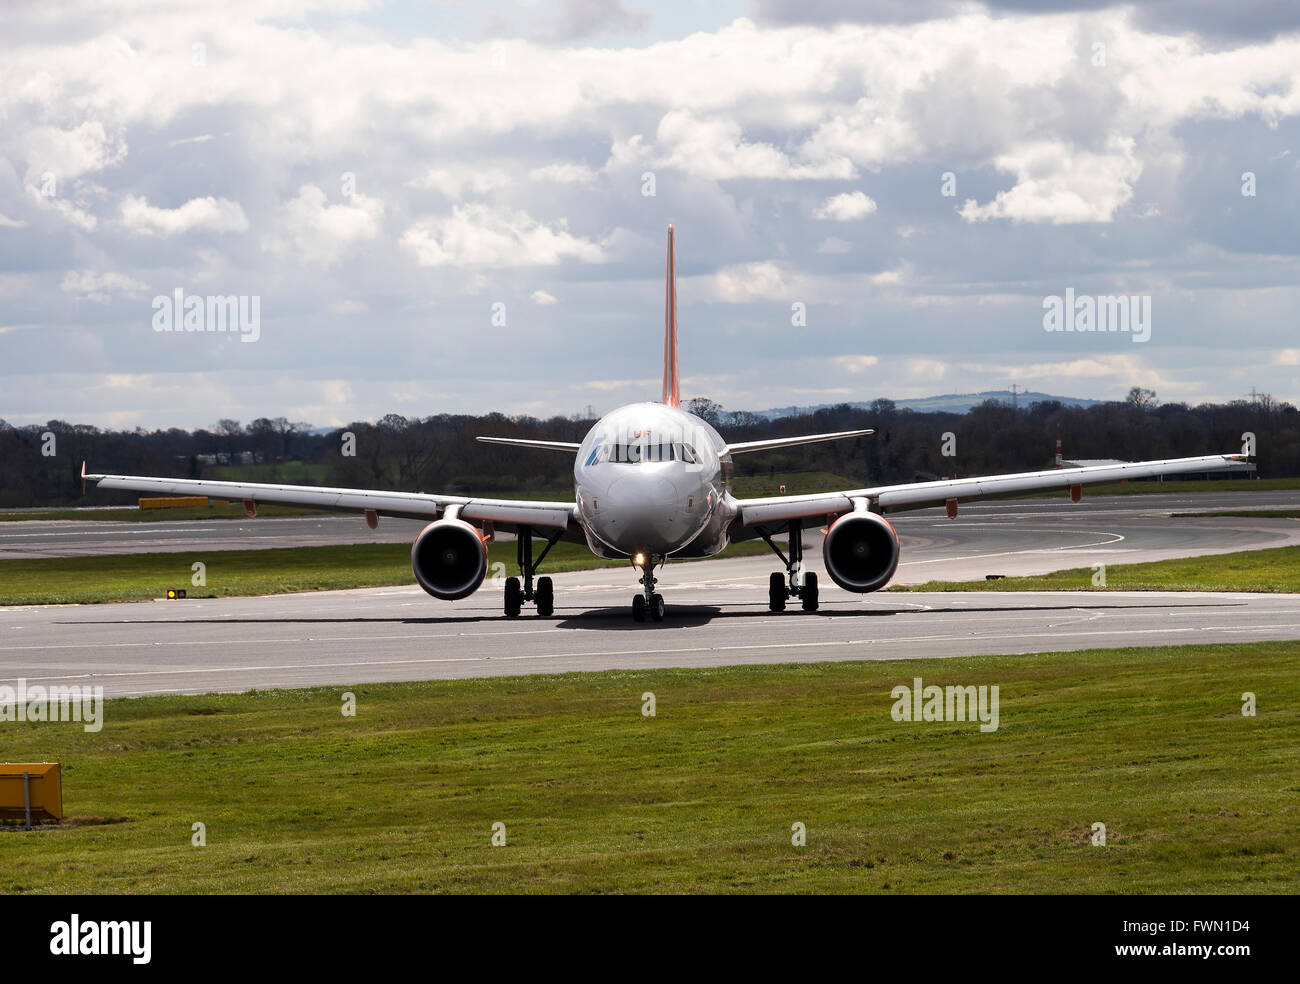 easyJet Airbus A320-214 Airliner G-EZUF Taxiing on Arrival at Manchester International Airport England United Kingdom - Stock Image